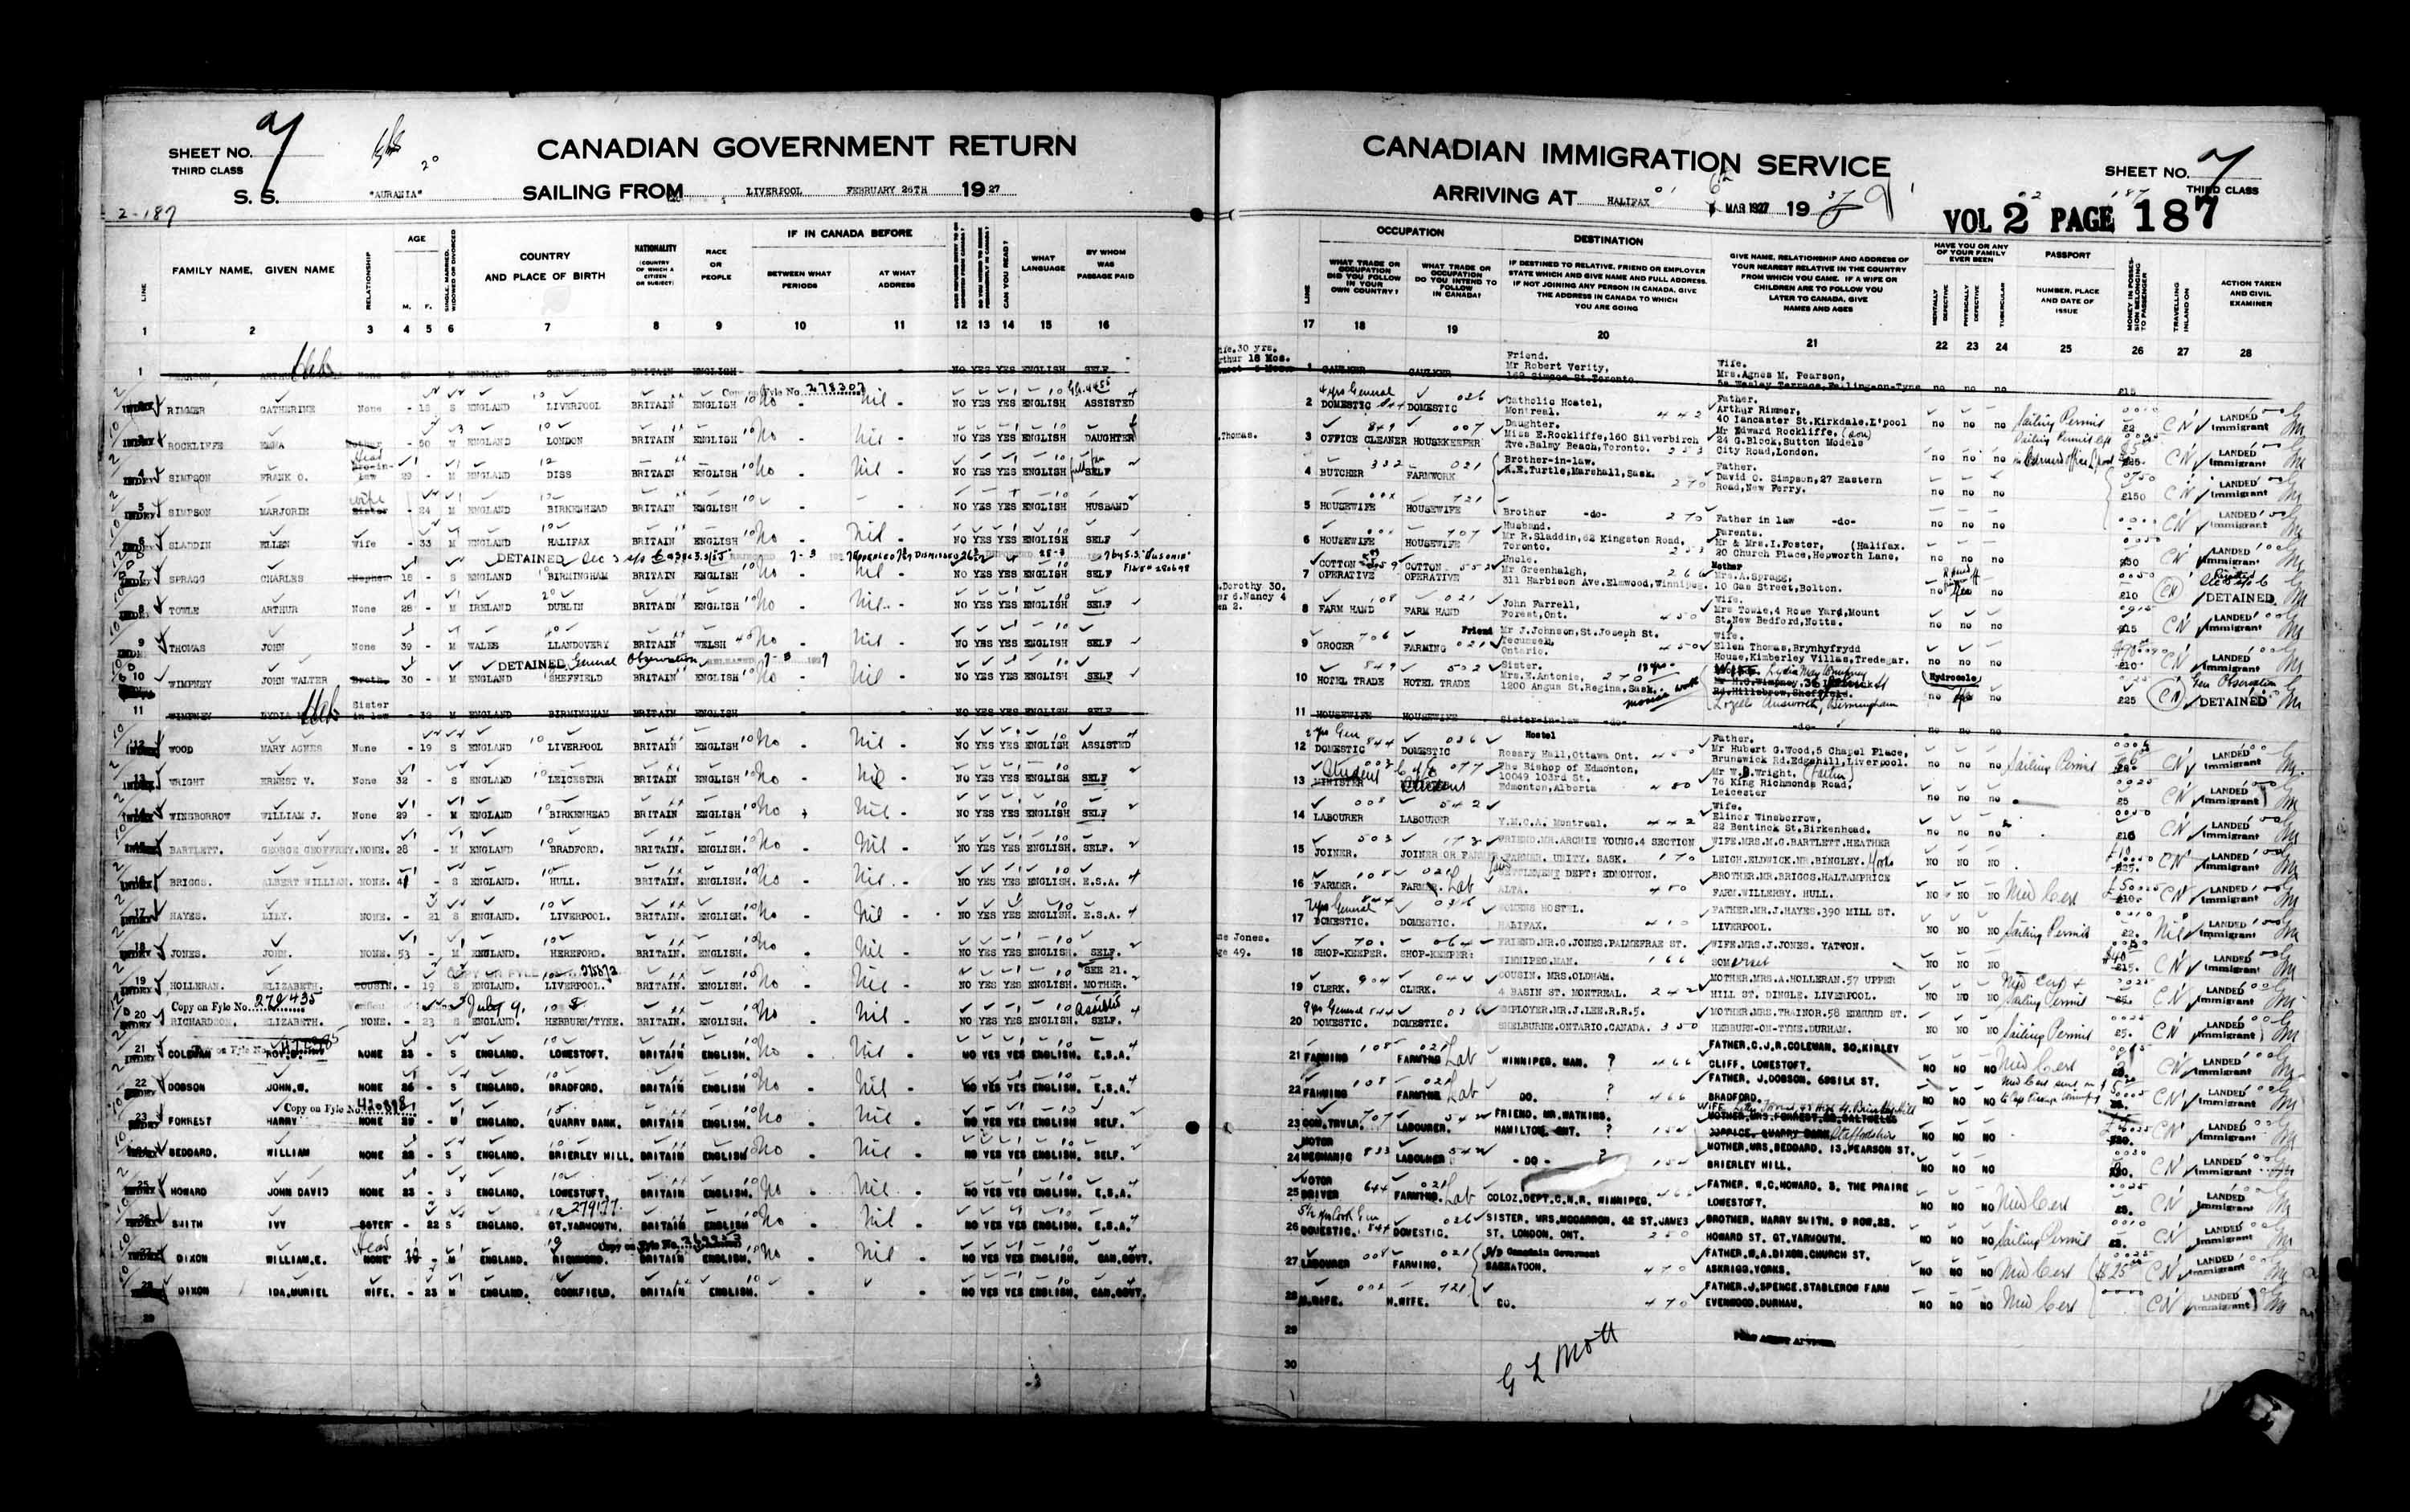 Title: Passenger Lists: Halifax (1925-1935) - Mikan Number: 134853 - Microform: t-14808